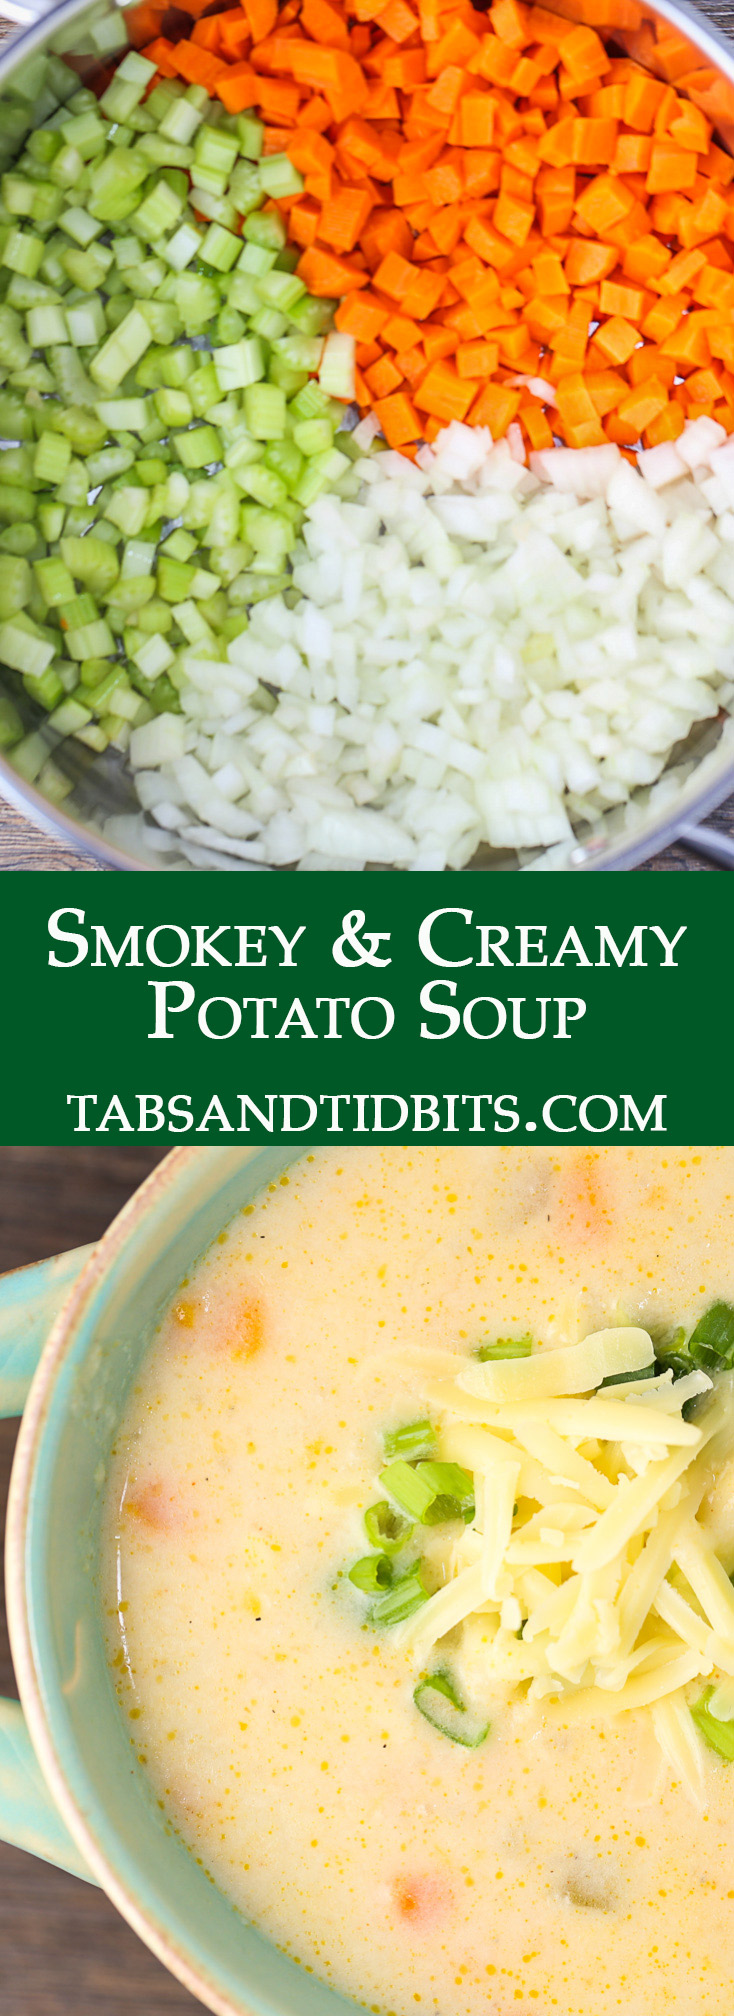 A filling potato soup filled with veggies, creaminess and delicious smokey seasonings topped with smokey Gouda cheese!